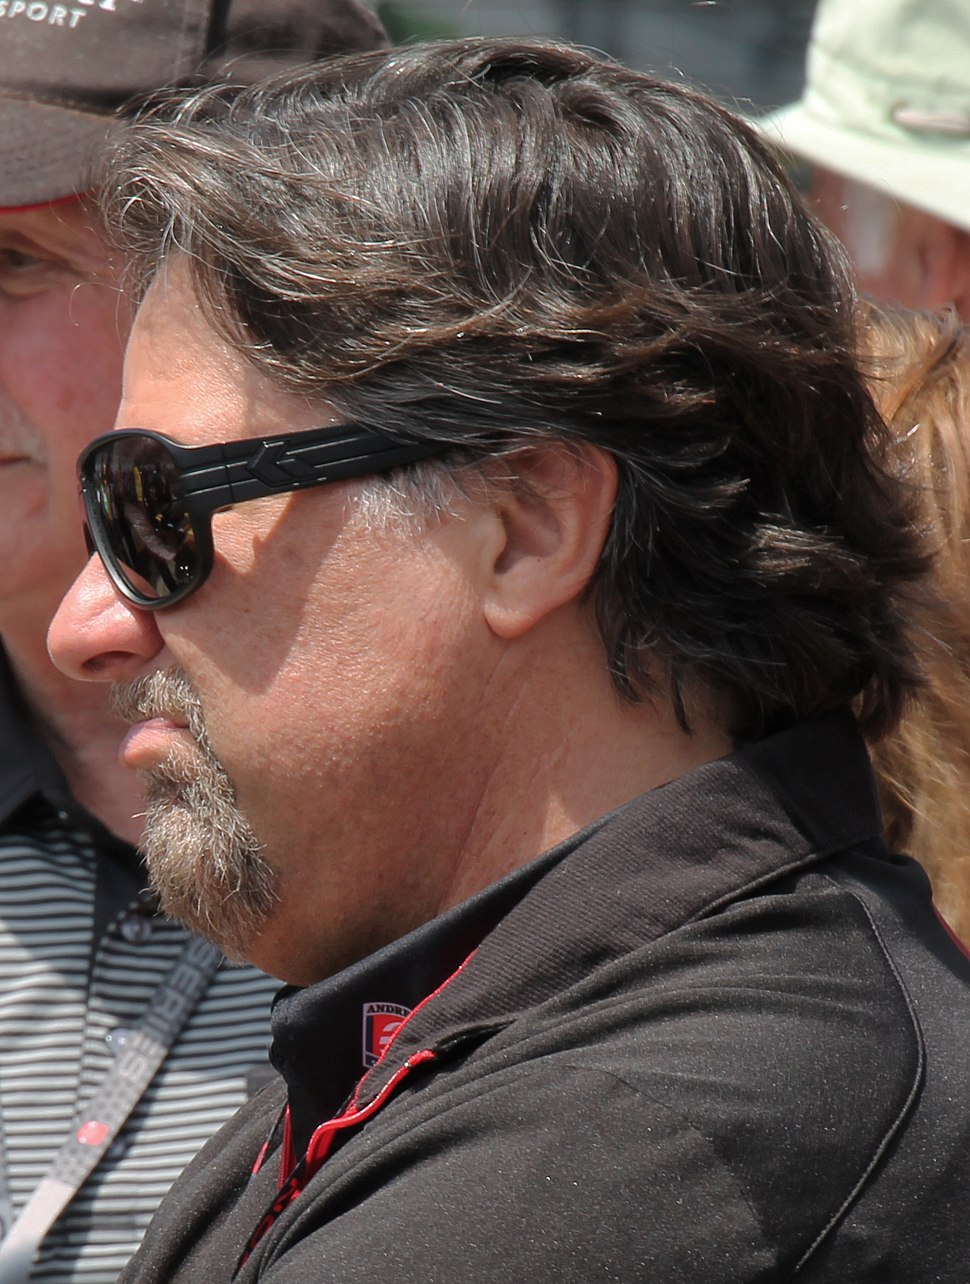 Michael Andretti at Carb Day 2015 at the Indianapolis 500 - Sarah Stierch